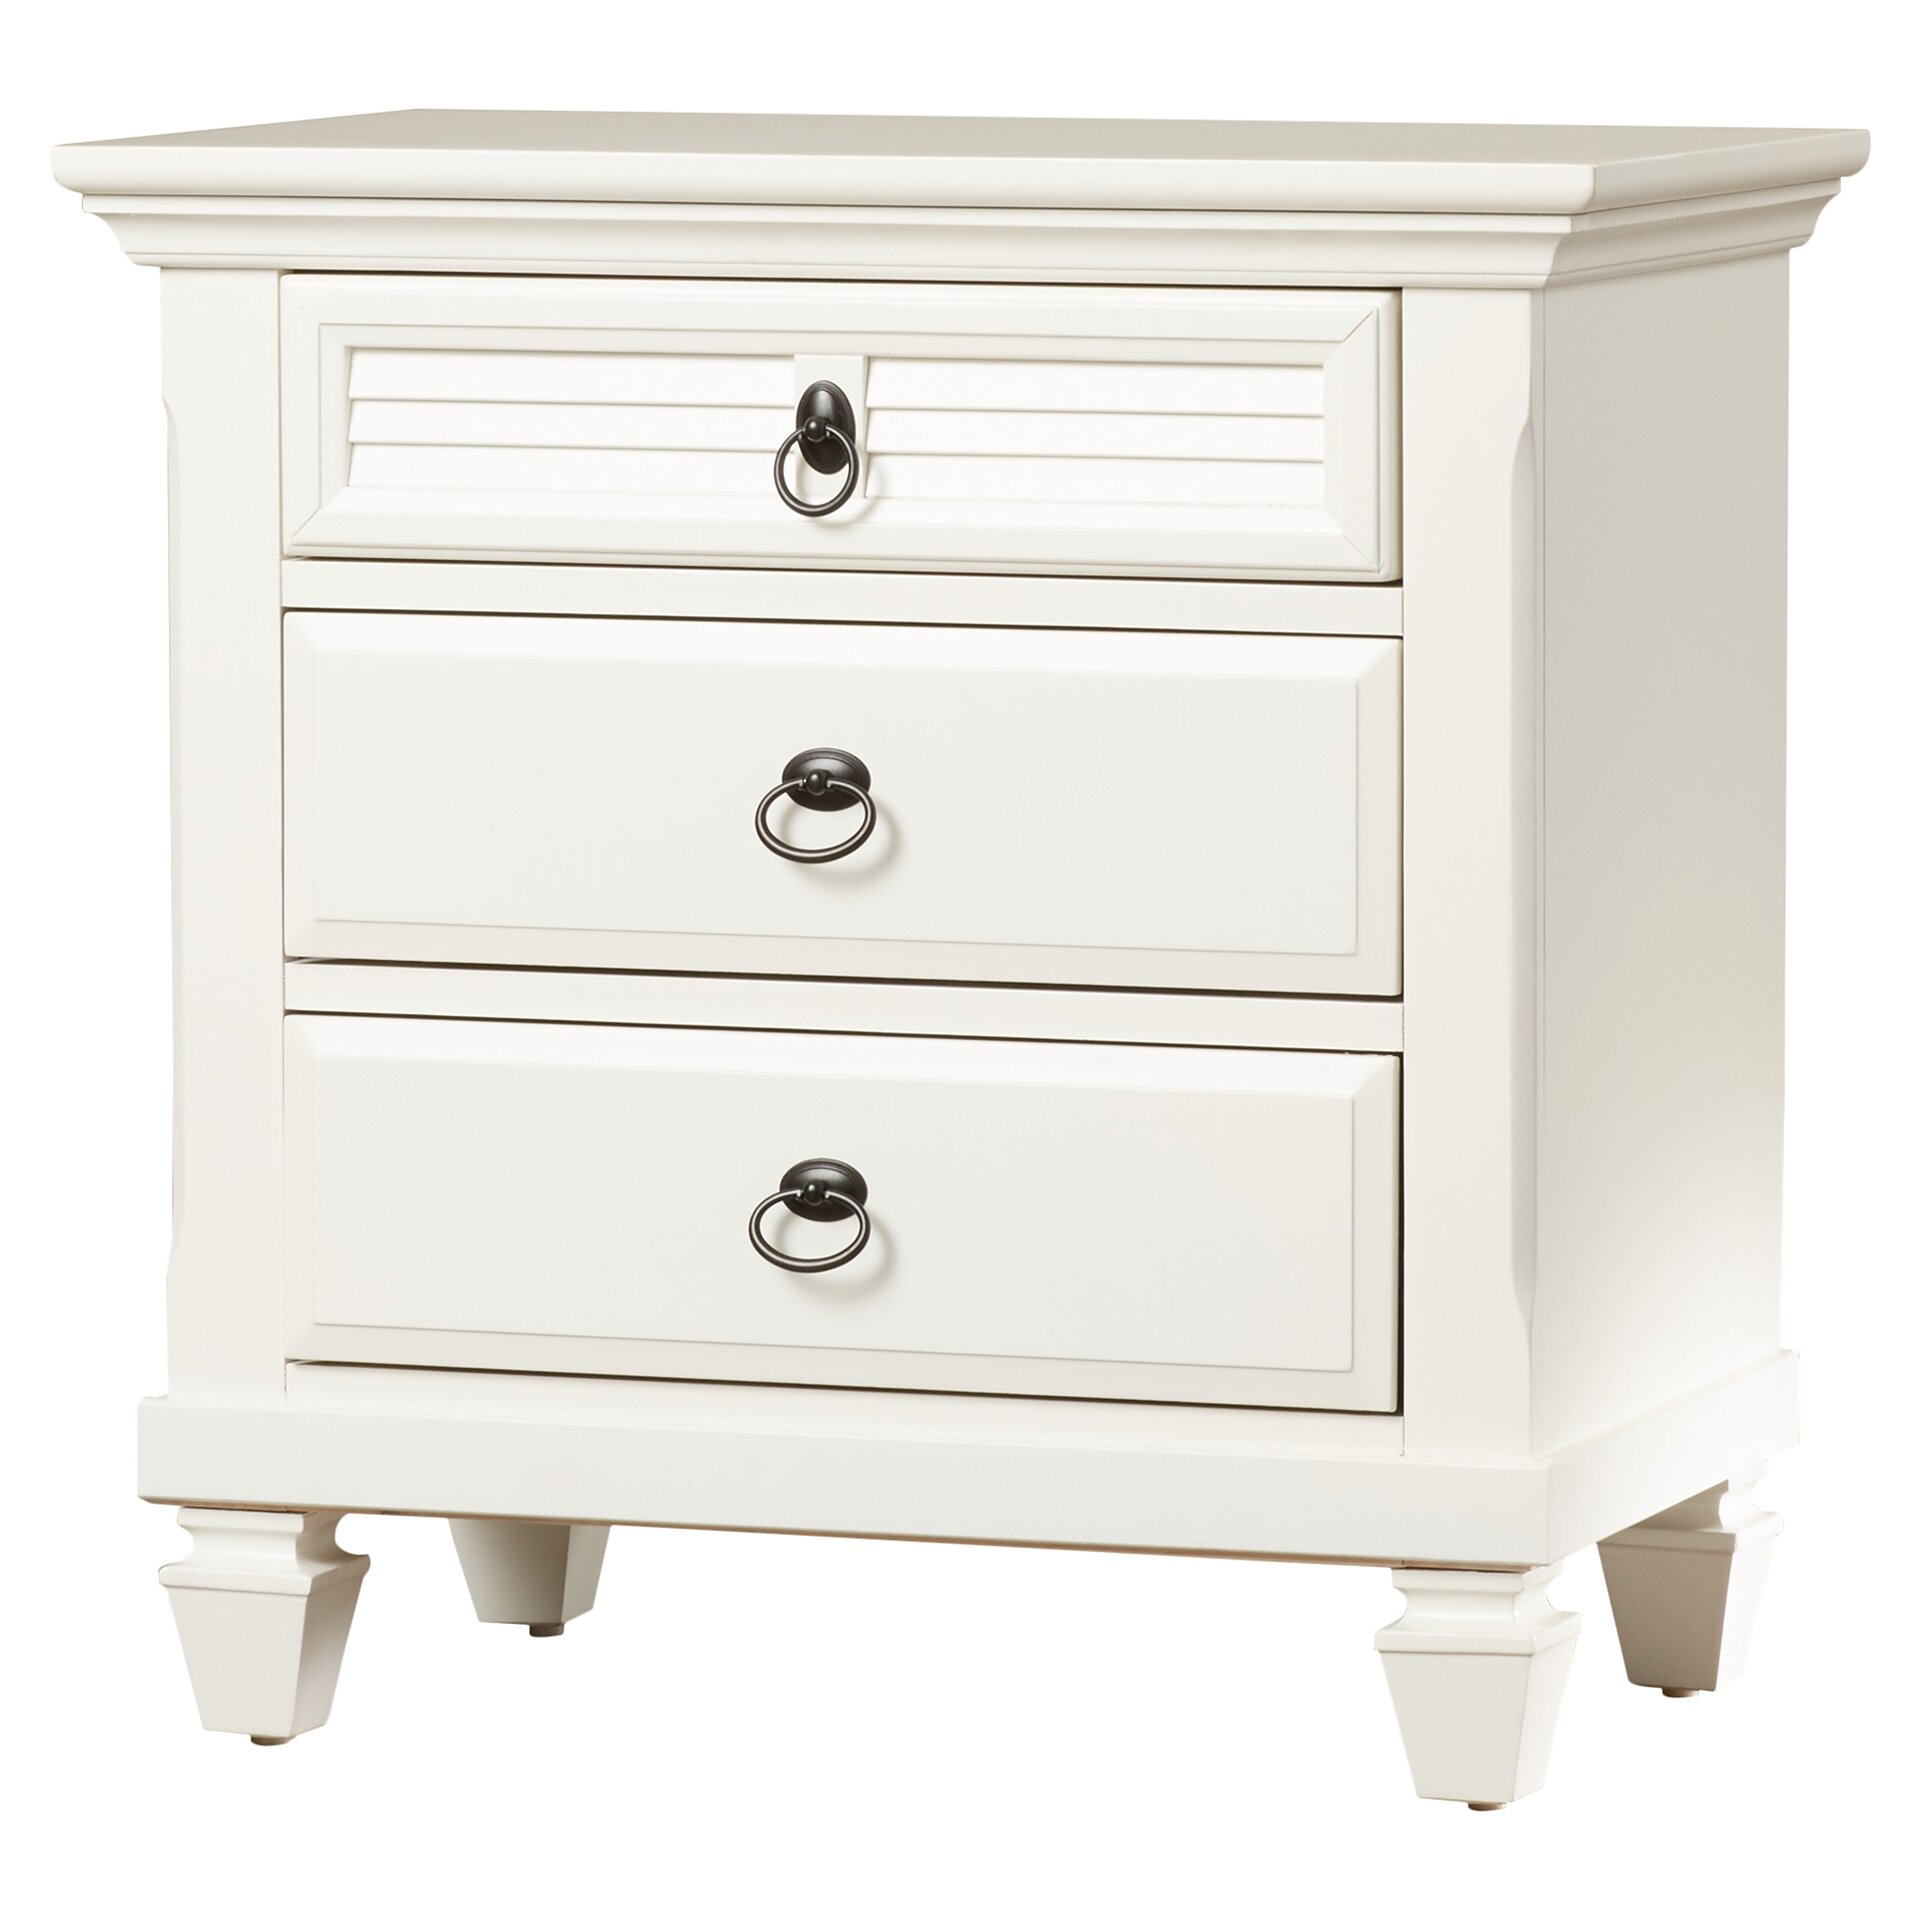 Beachcrest home norfolk 3 drawer nightstand reviews for White wood nightstand